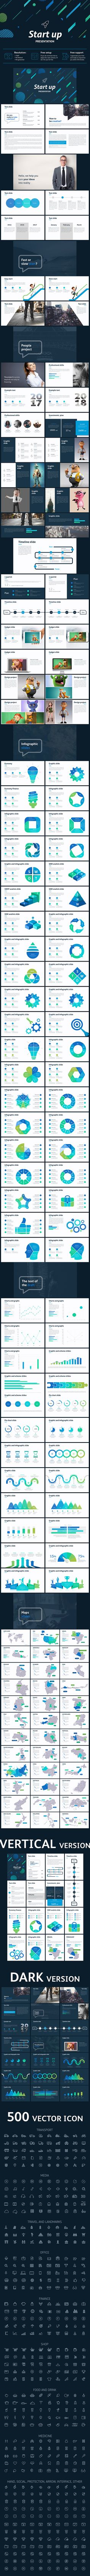 Start up Best Powerpoint template - #Business #PowerPoint #Templates Download here: https://graphicriver.net/item/start-up-best-powerpoint-template/19309079?ref=alena994